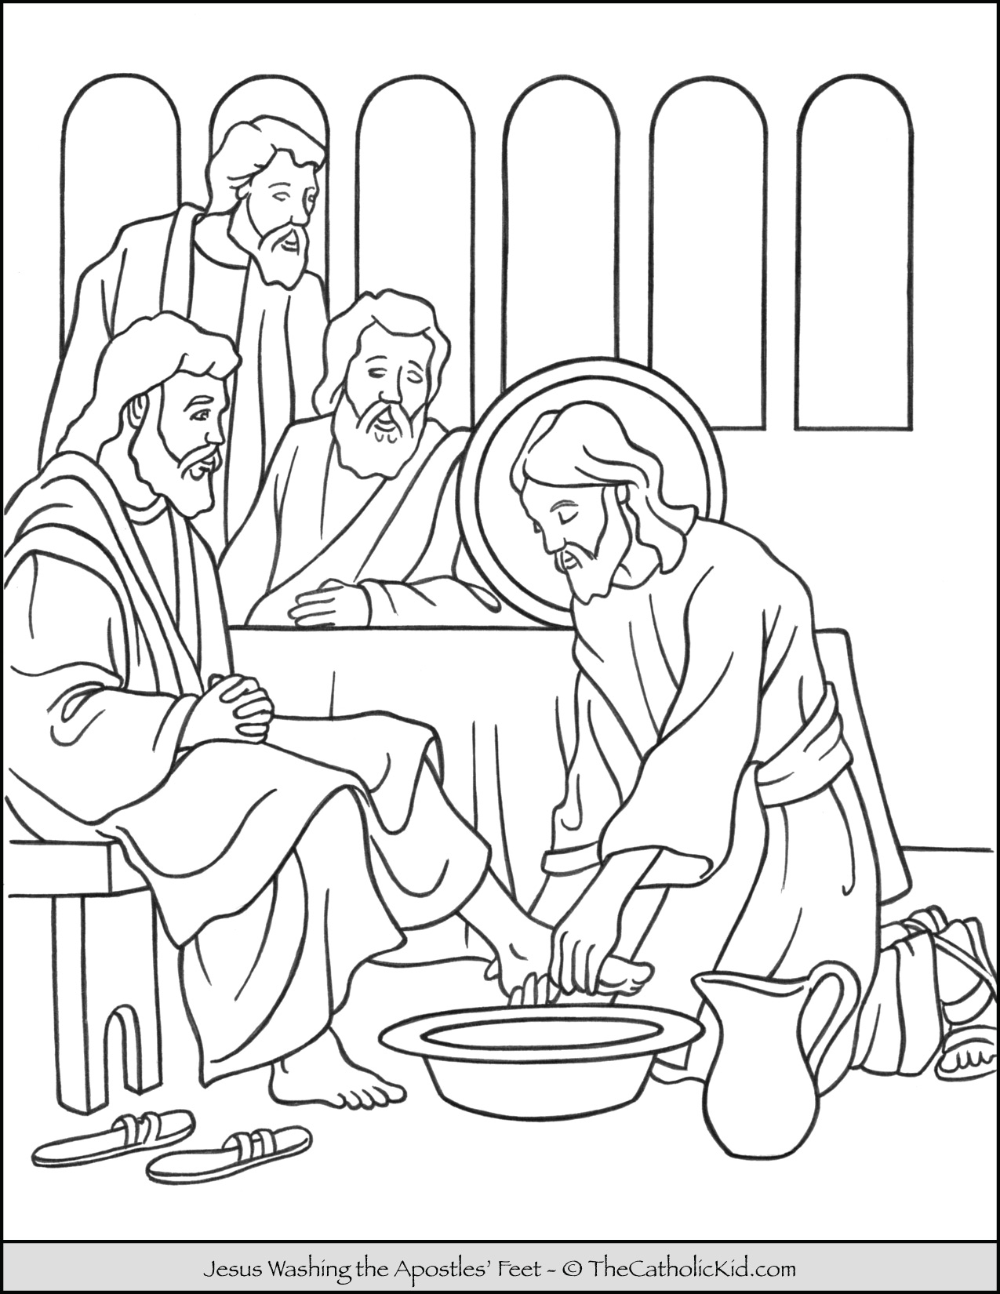 Jesus Washing The Apostles Feet Coloring Page Thecatholickid Com Bible Coloring Pages Jesus Coloring Pages Sunday School Coloring Pages